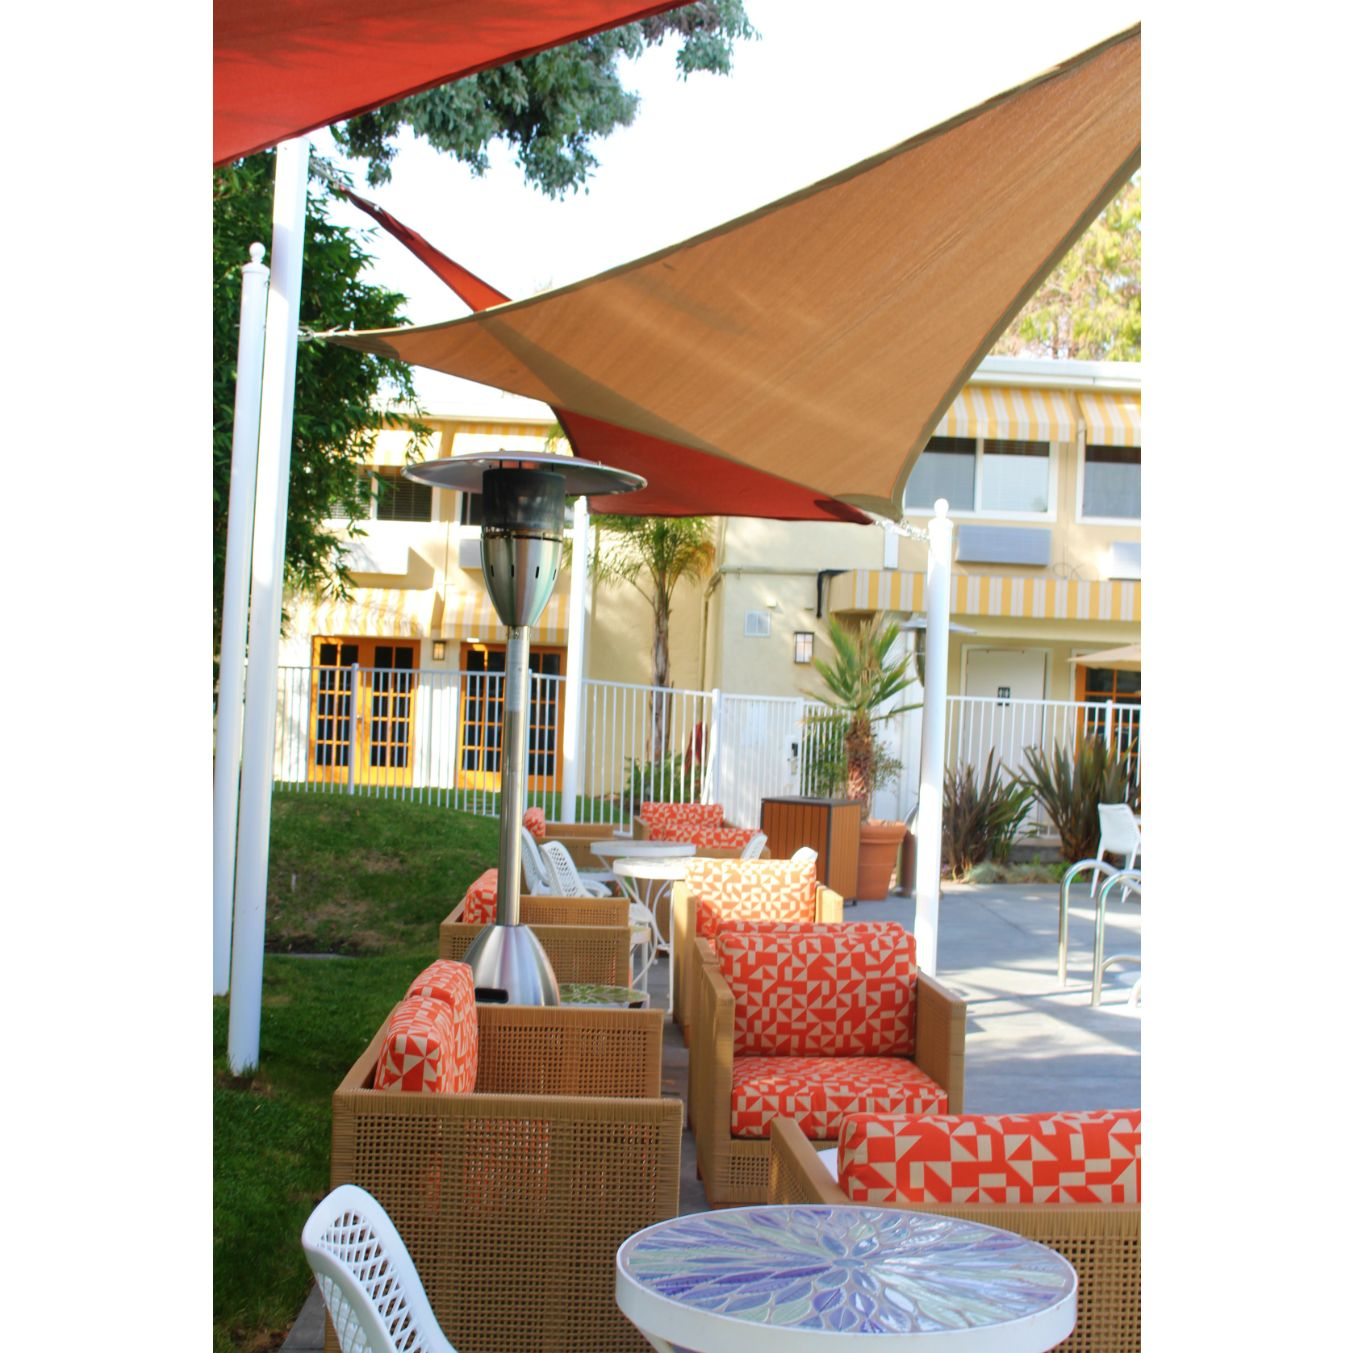 Cool Spots Our Covered Patio Lounge Has The Perfect Amount Of Shade Palms Hotel California Hotel Patio Lounge